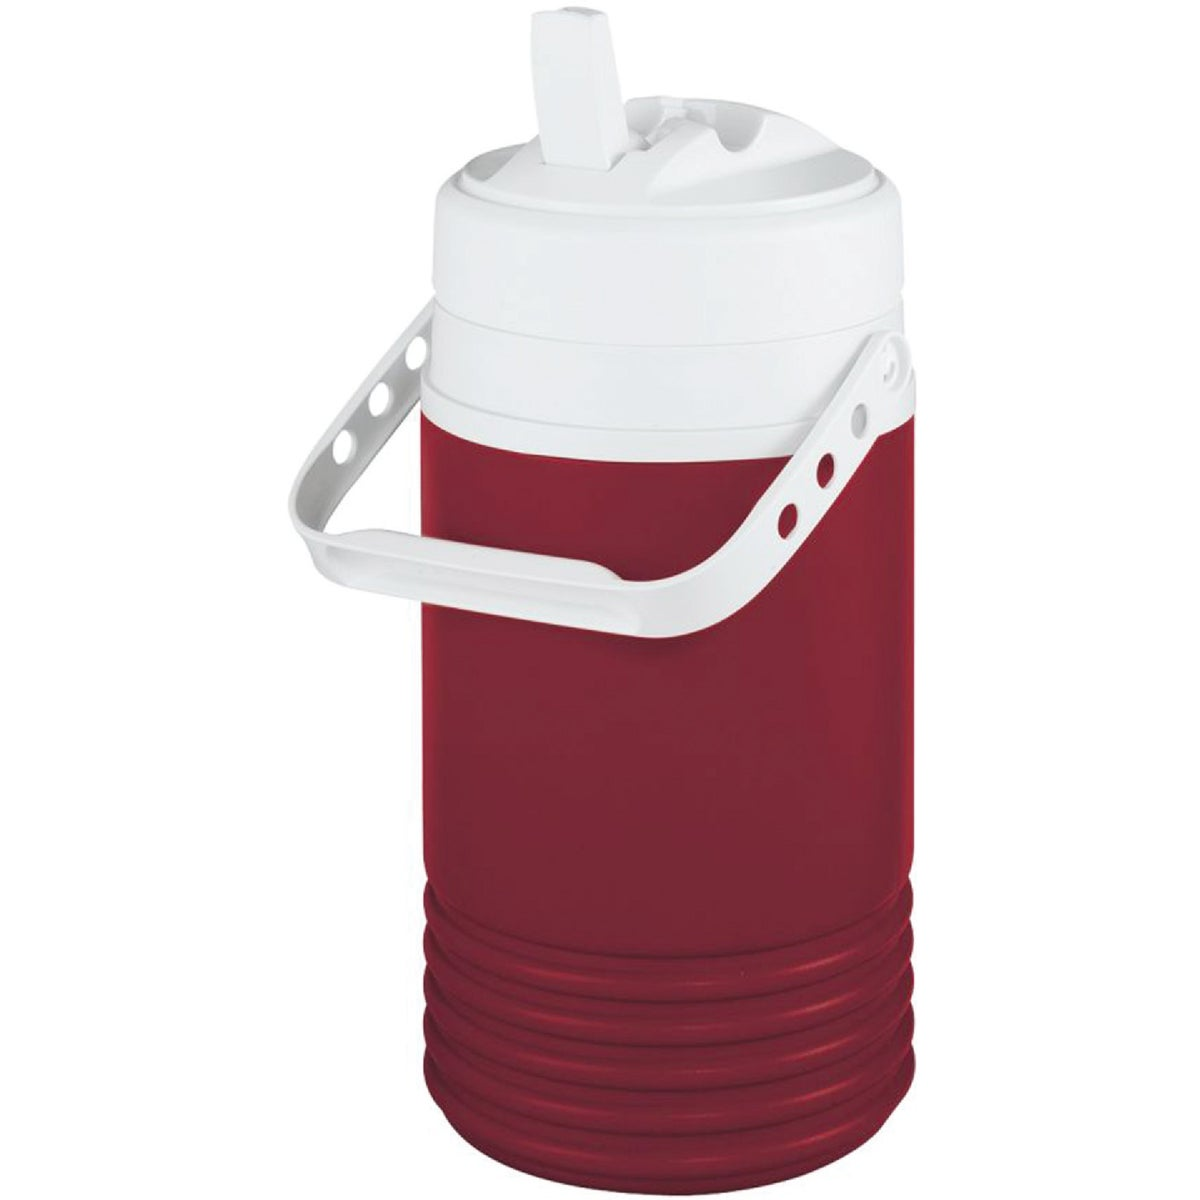 1/2GAL VICTORY JUG - 154406MODRD by Rubbermaid